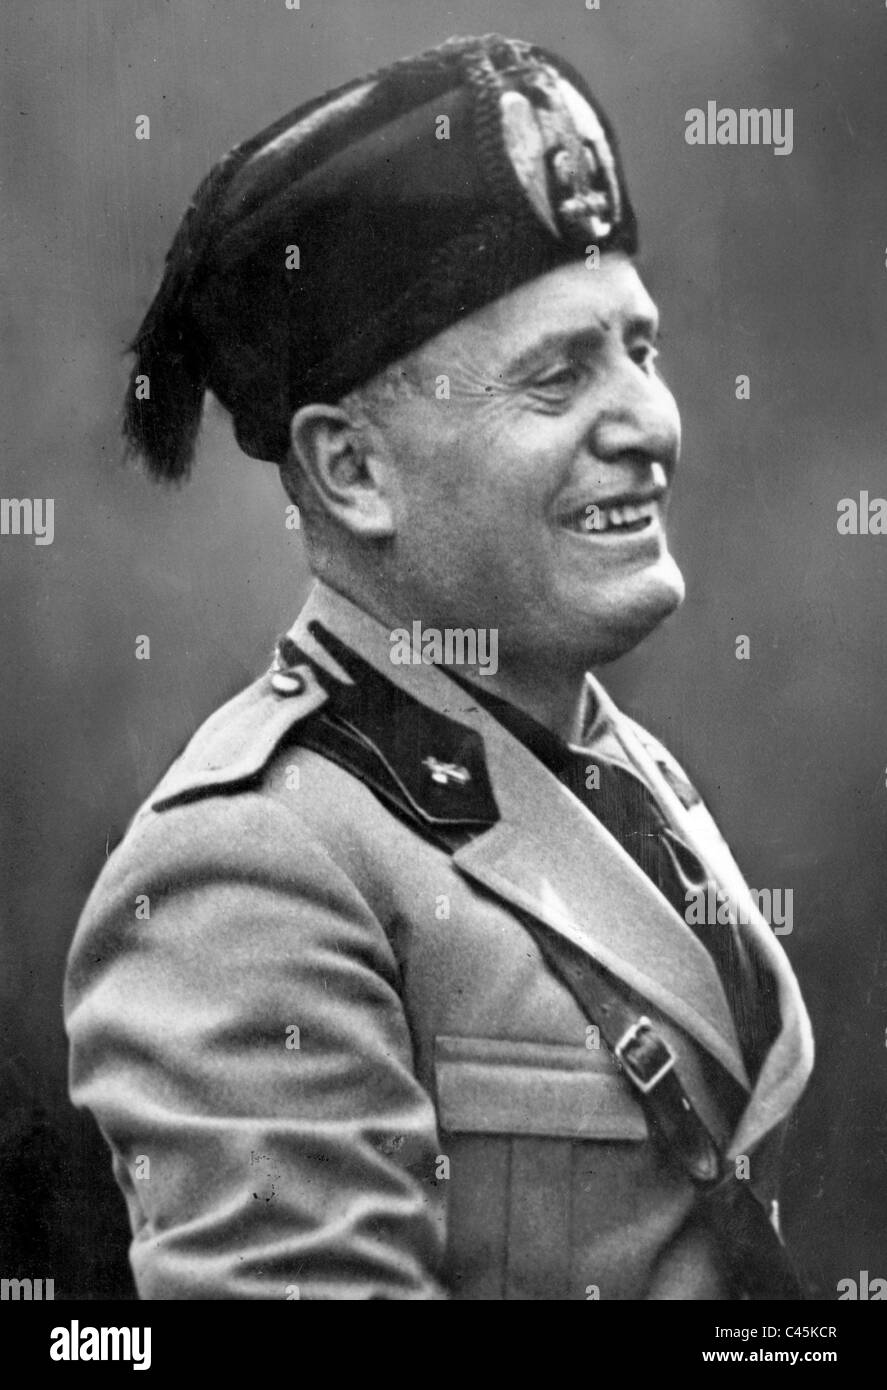 benito mussolini Visit amazoncom's benito mussolini page and shop for all benito mussolini books check out pictures, bibliography, and biography of benito mussolini.